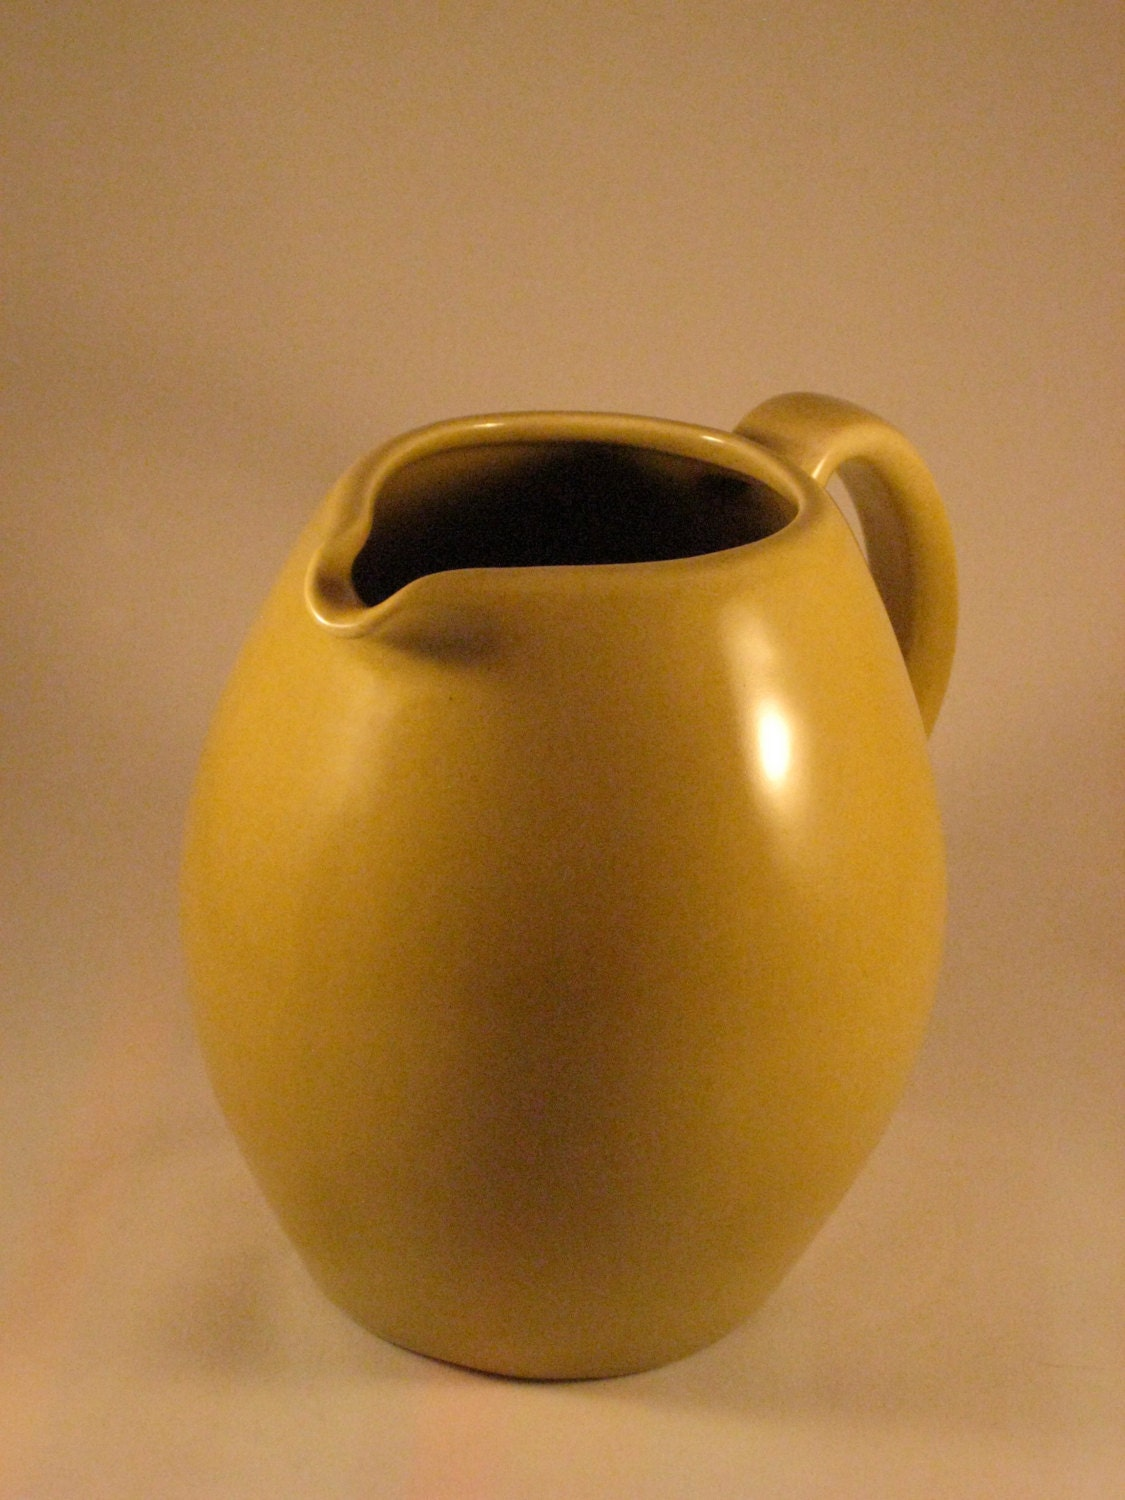 Russel wright iroquois casual china avocado pitcher - Russel wright pitcher ...